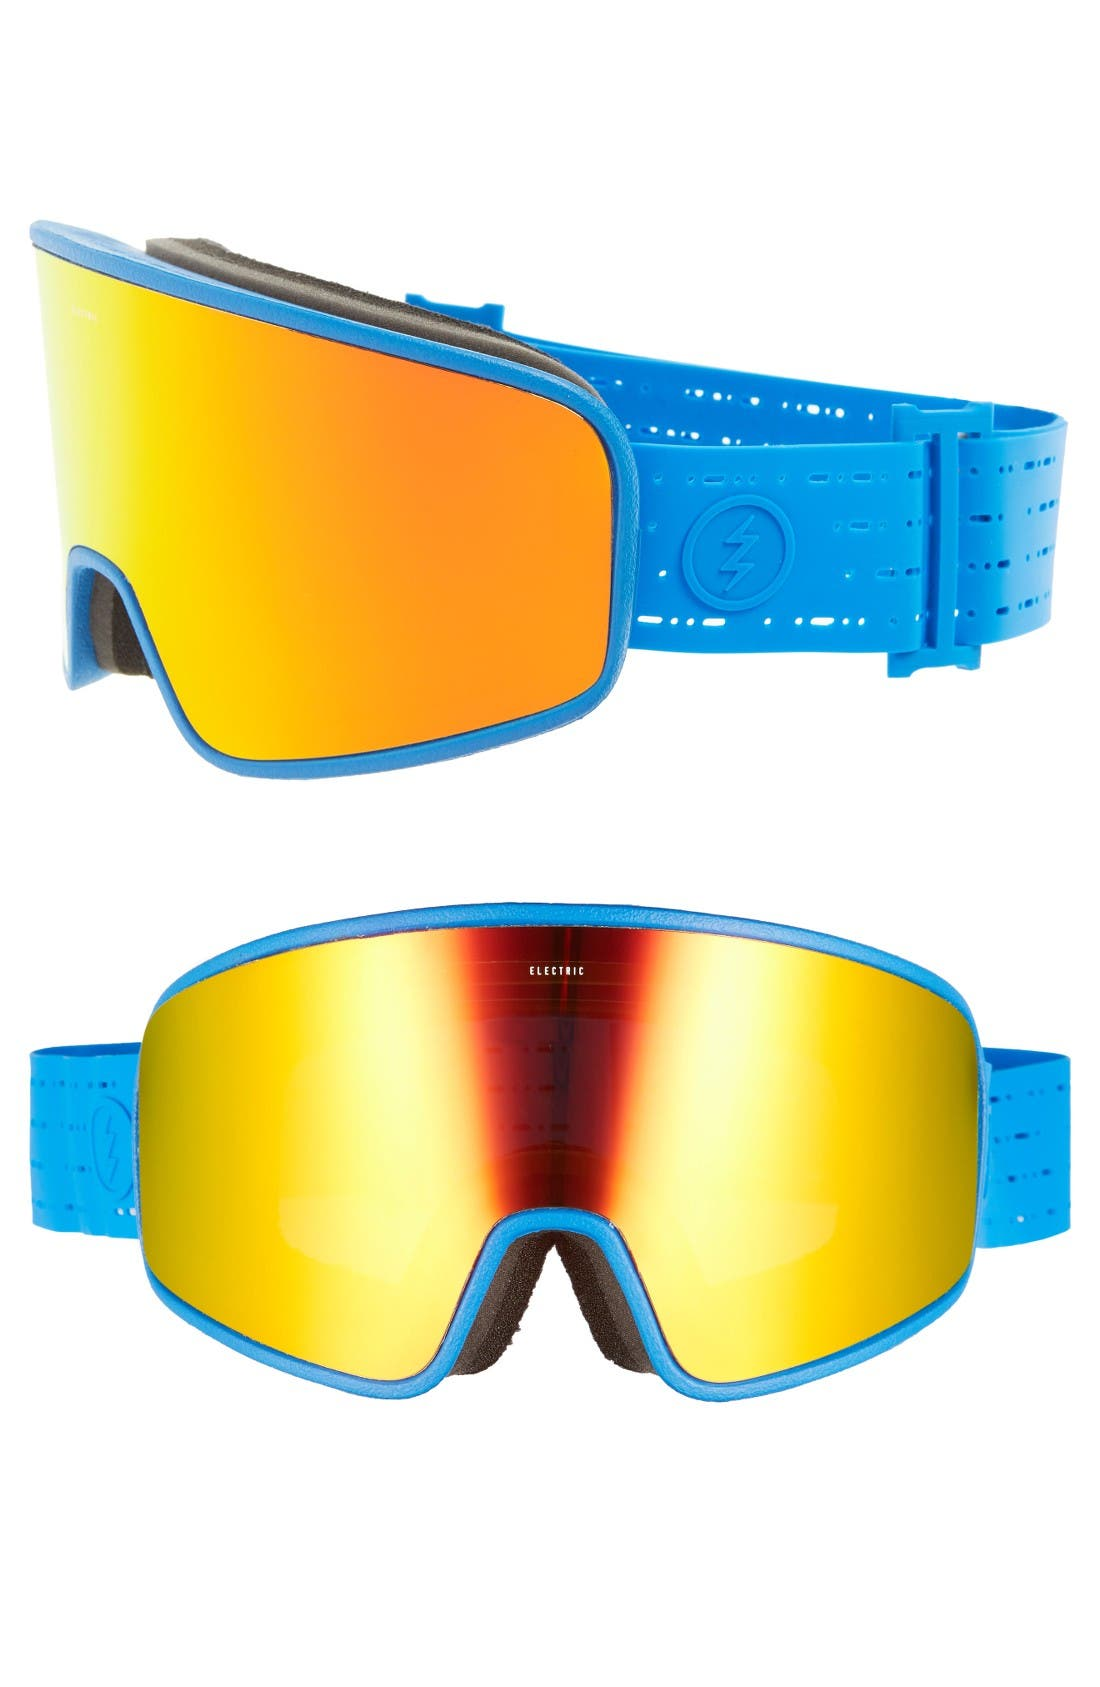 Main Image - ELECTRIC Electrolite 215mm Snow Goggles